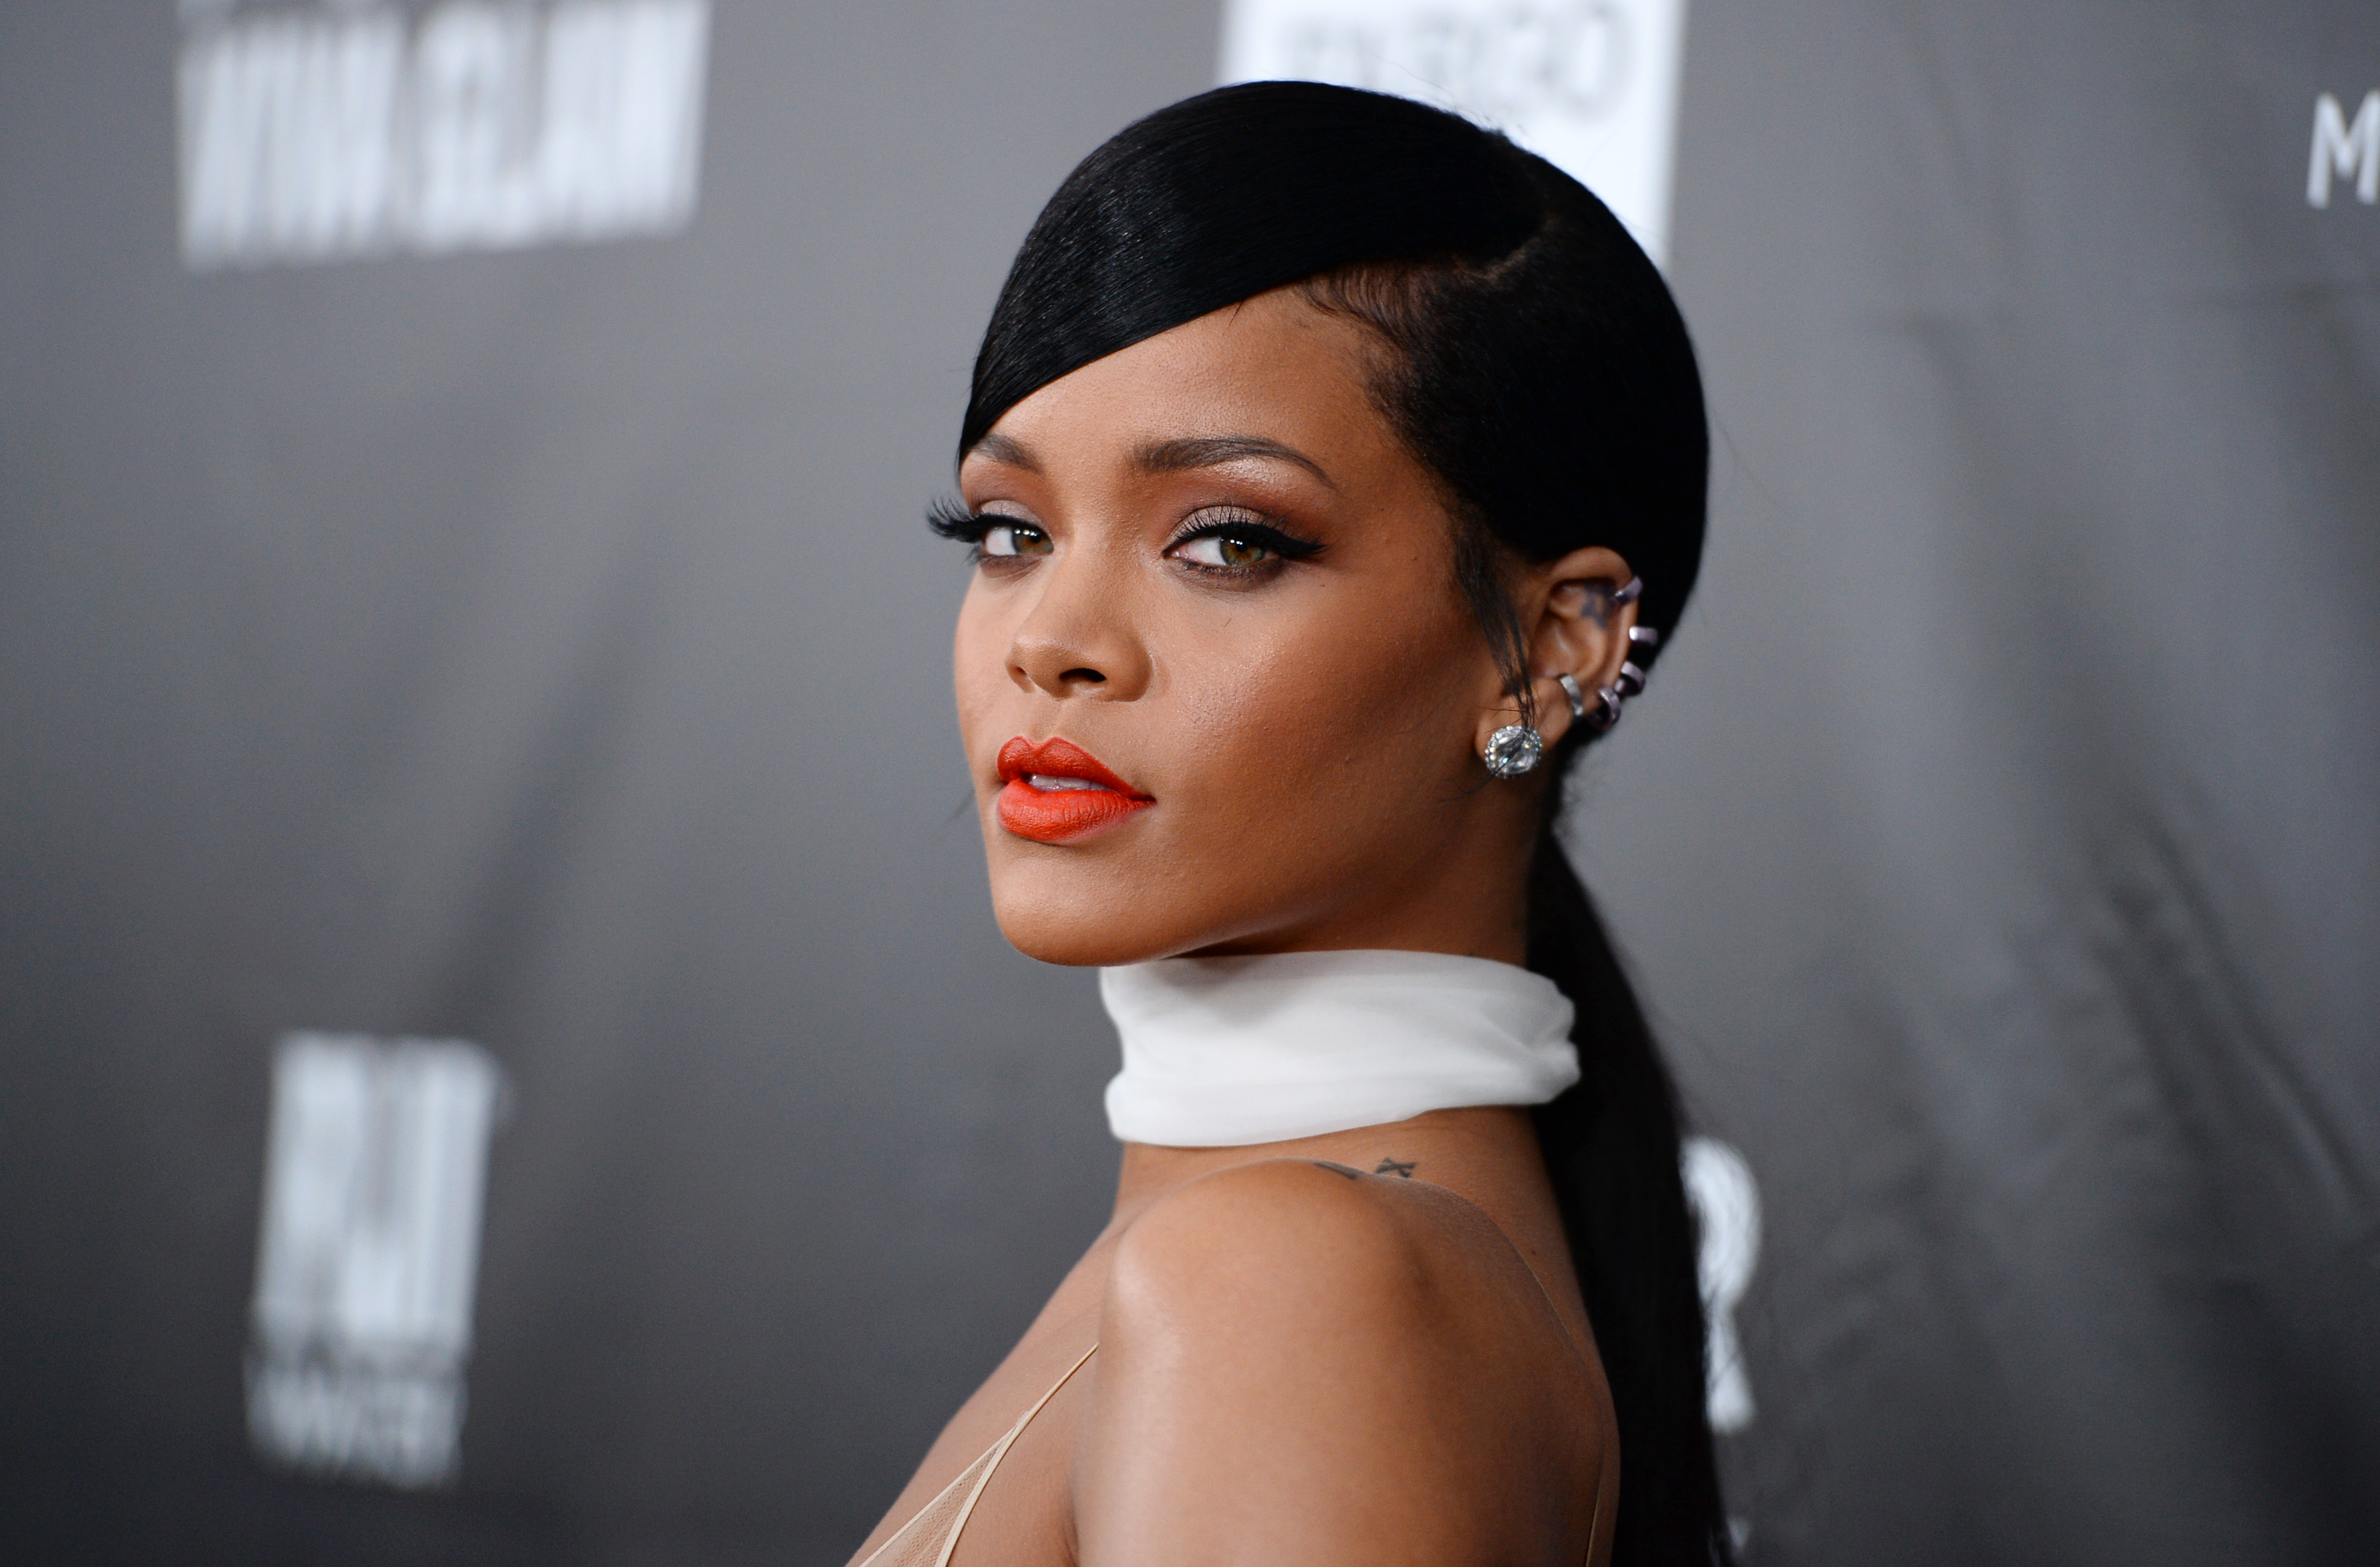 FILE - This Oct. 29, 2014 file photo shows Rihanna at the 2014 amfAR Inspiration Gala at Milk Studios in Los Angeles. Rihanna will host her first Diamond Ball on Dec. 11 to benefit her foundation that promotes education and arts globally. (Photo by Jordan Strauss/Invision/AP, File)